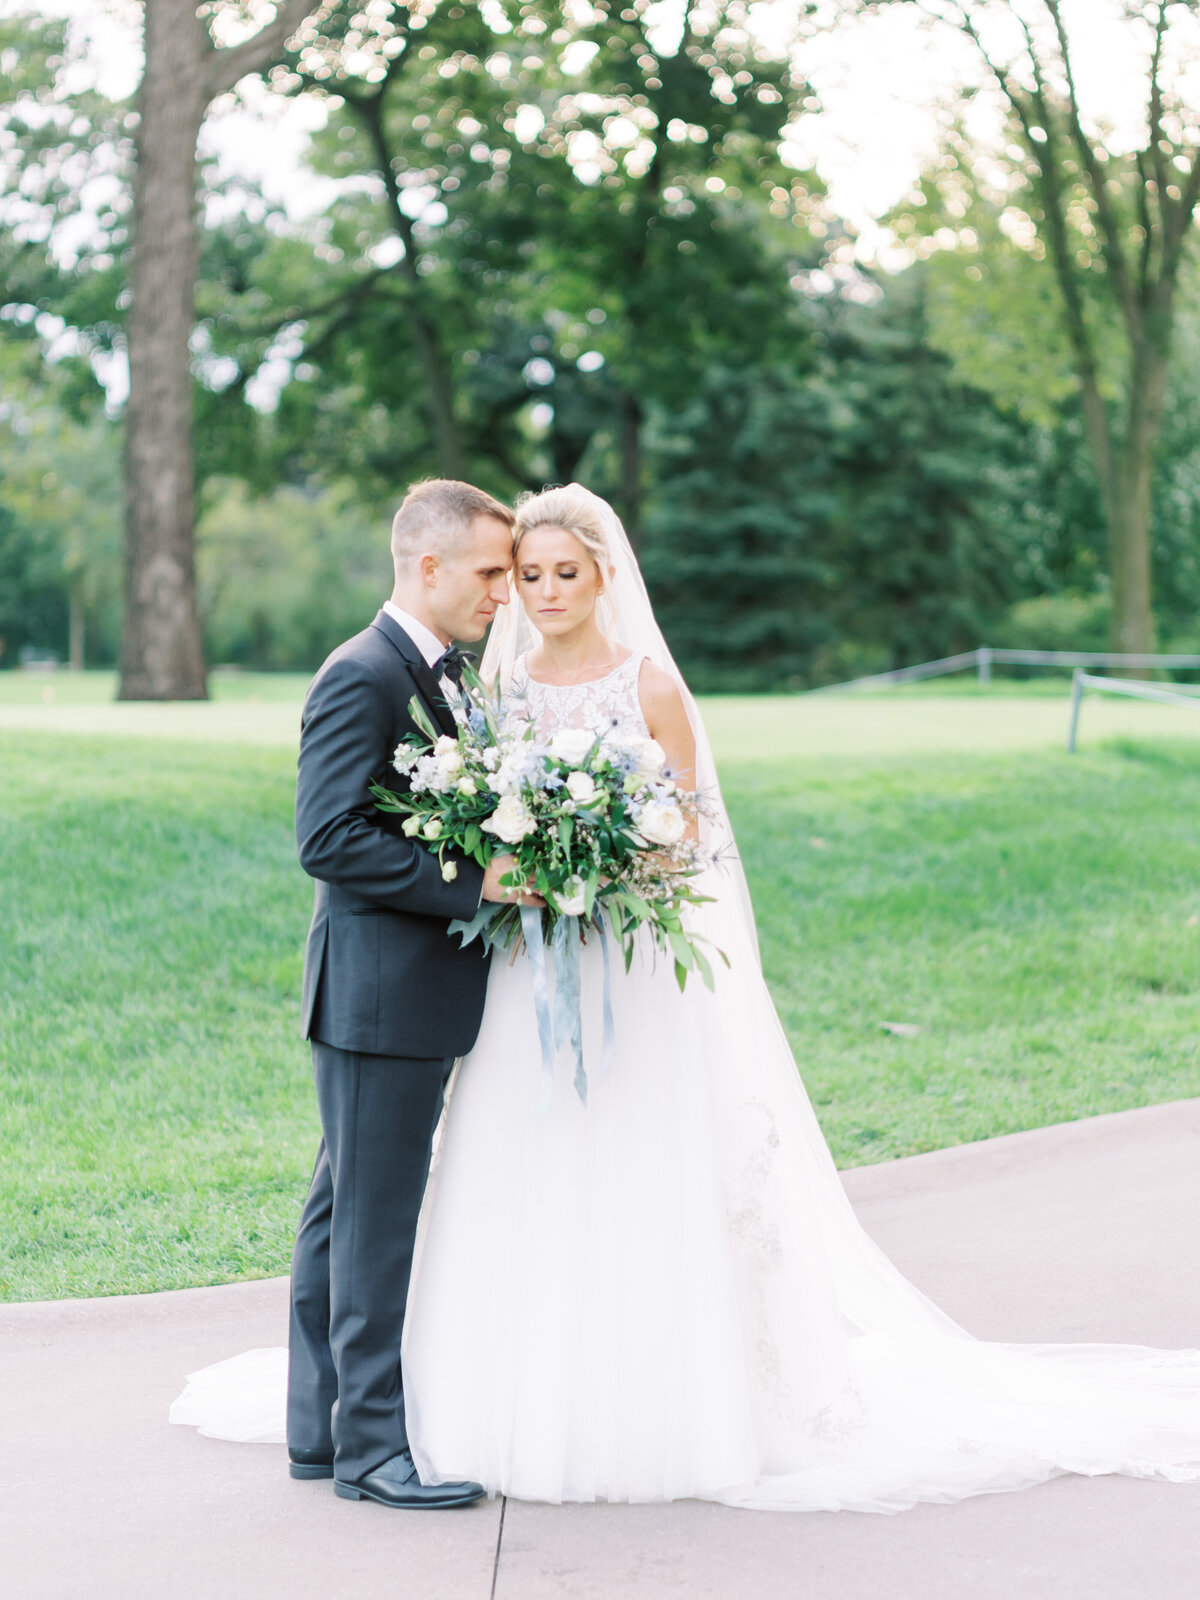 TiffaneyChildsPhotography-ChicagoWeddingPhotographer-Caitlin+Devin-MedinahCountryClubWedding-BridalPortraits-43